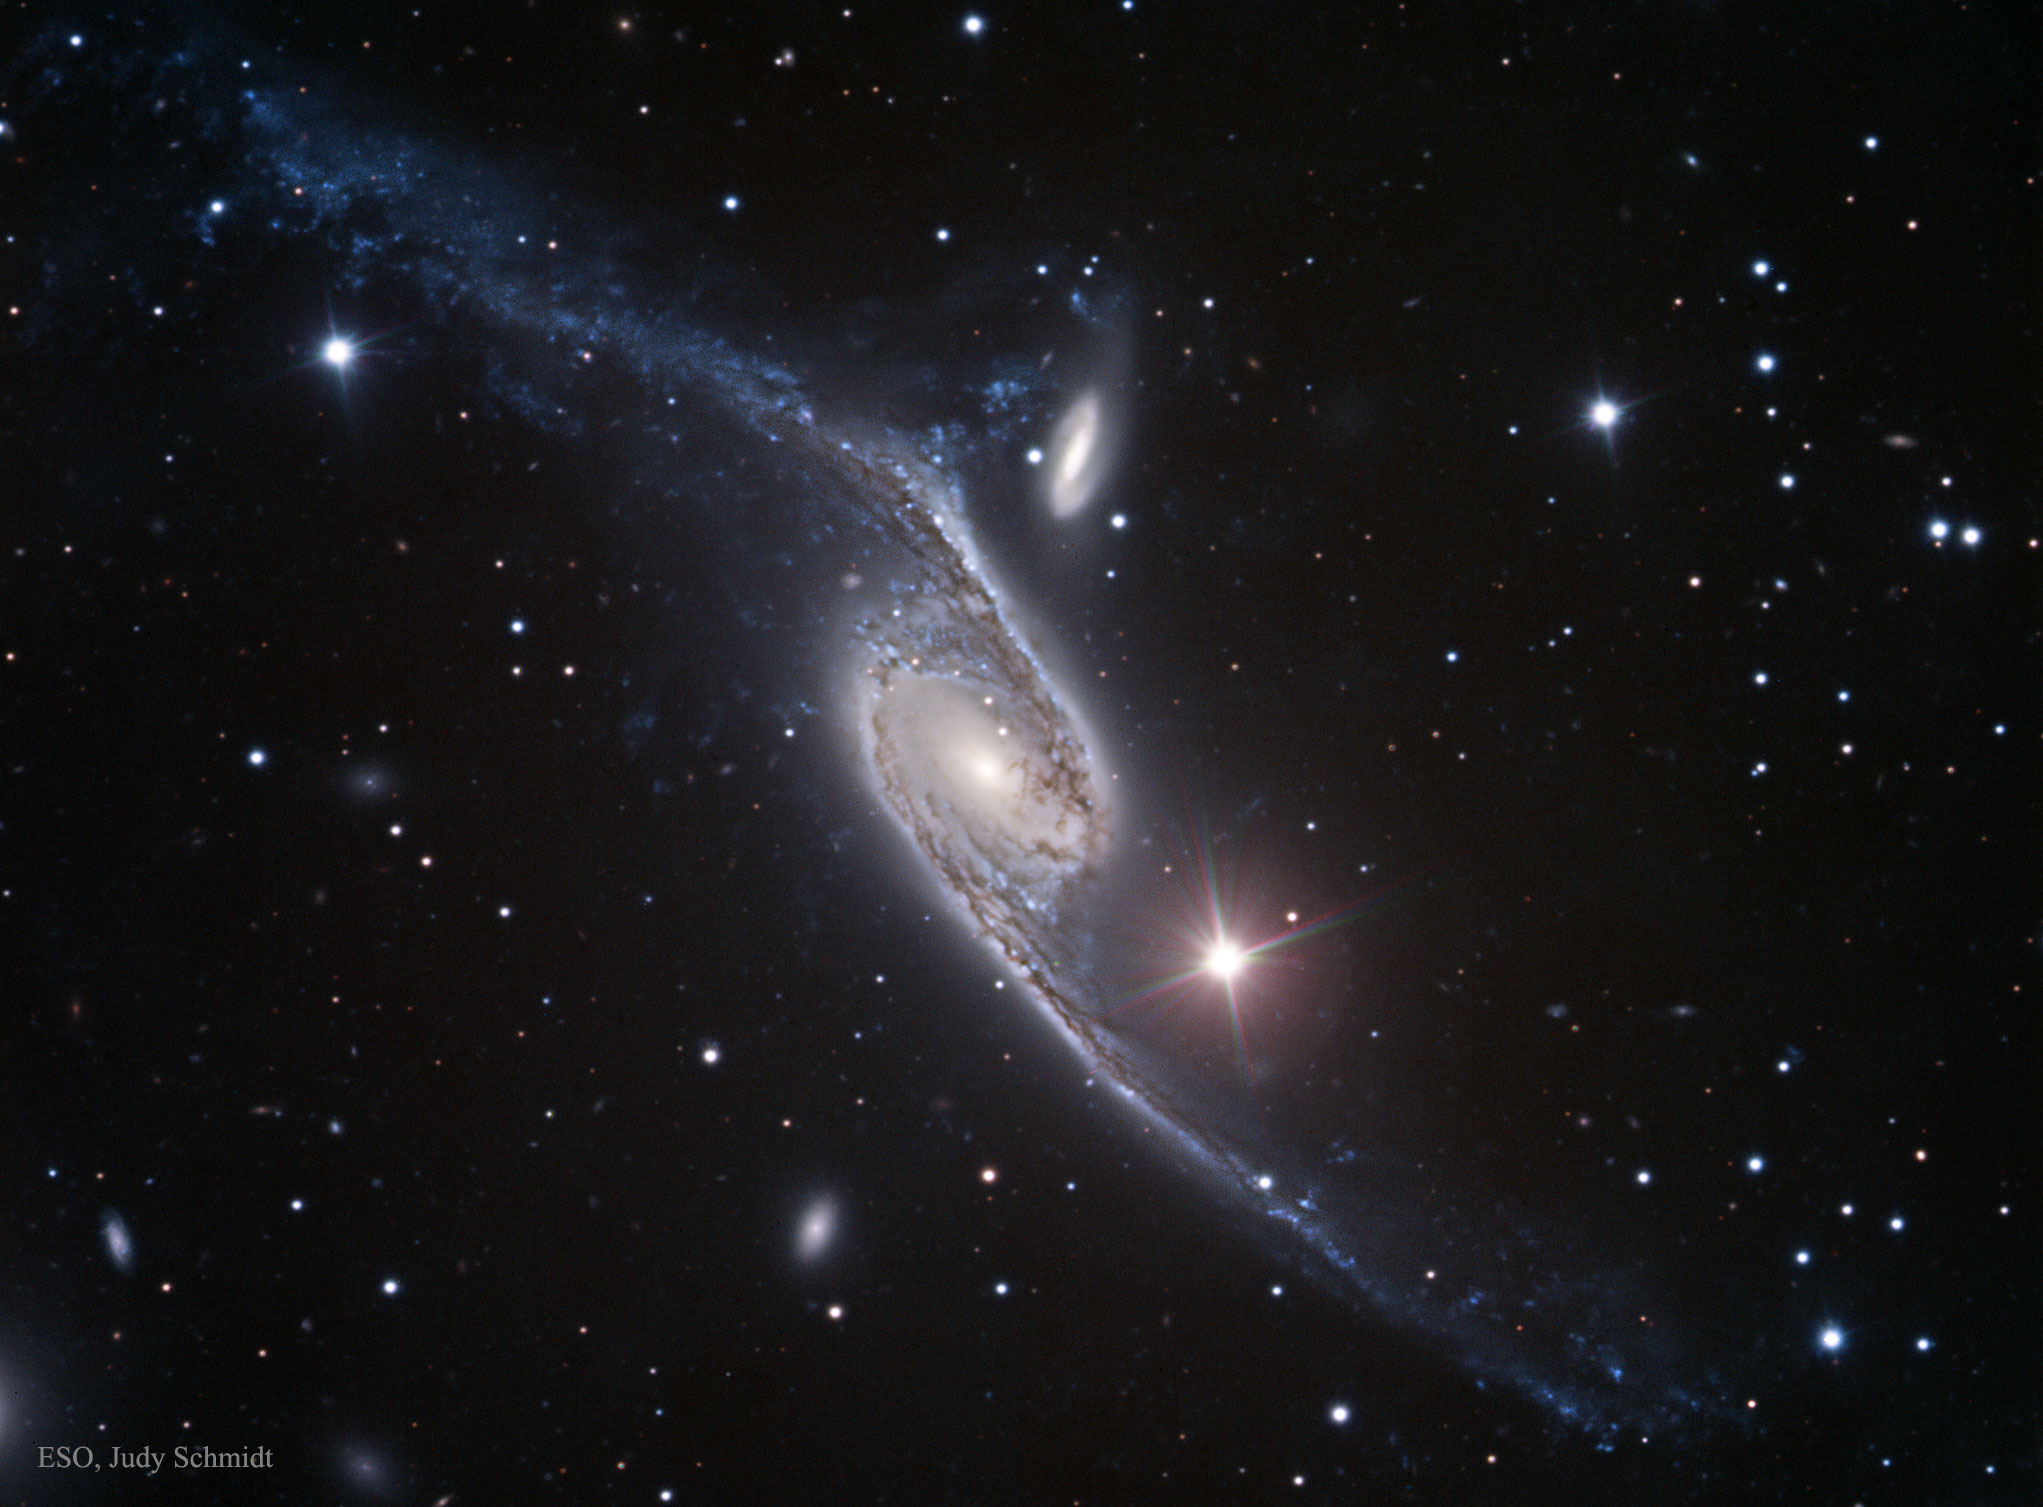 APOD: 2016 April 26 - NGC 6872: A Stretched Spiral Galaxy